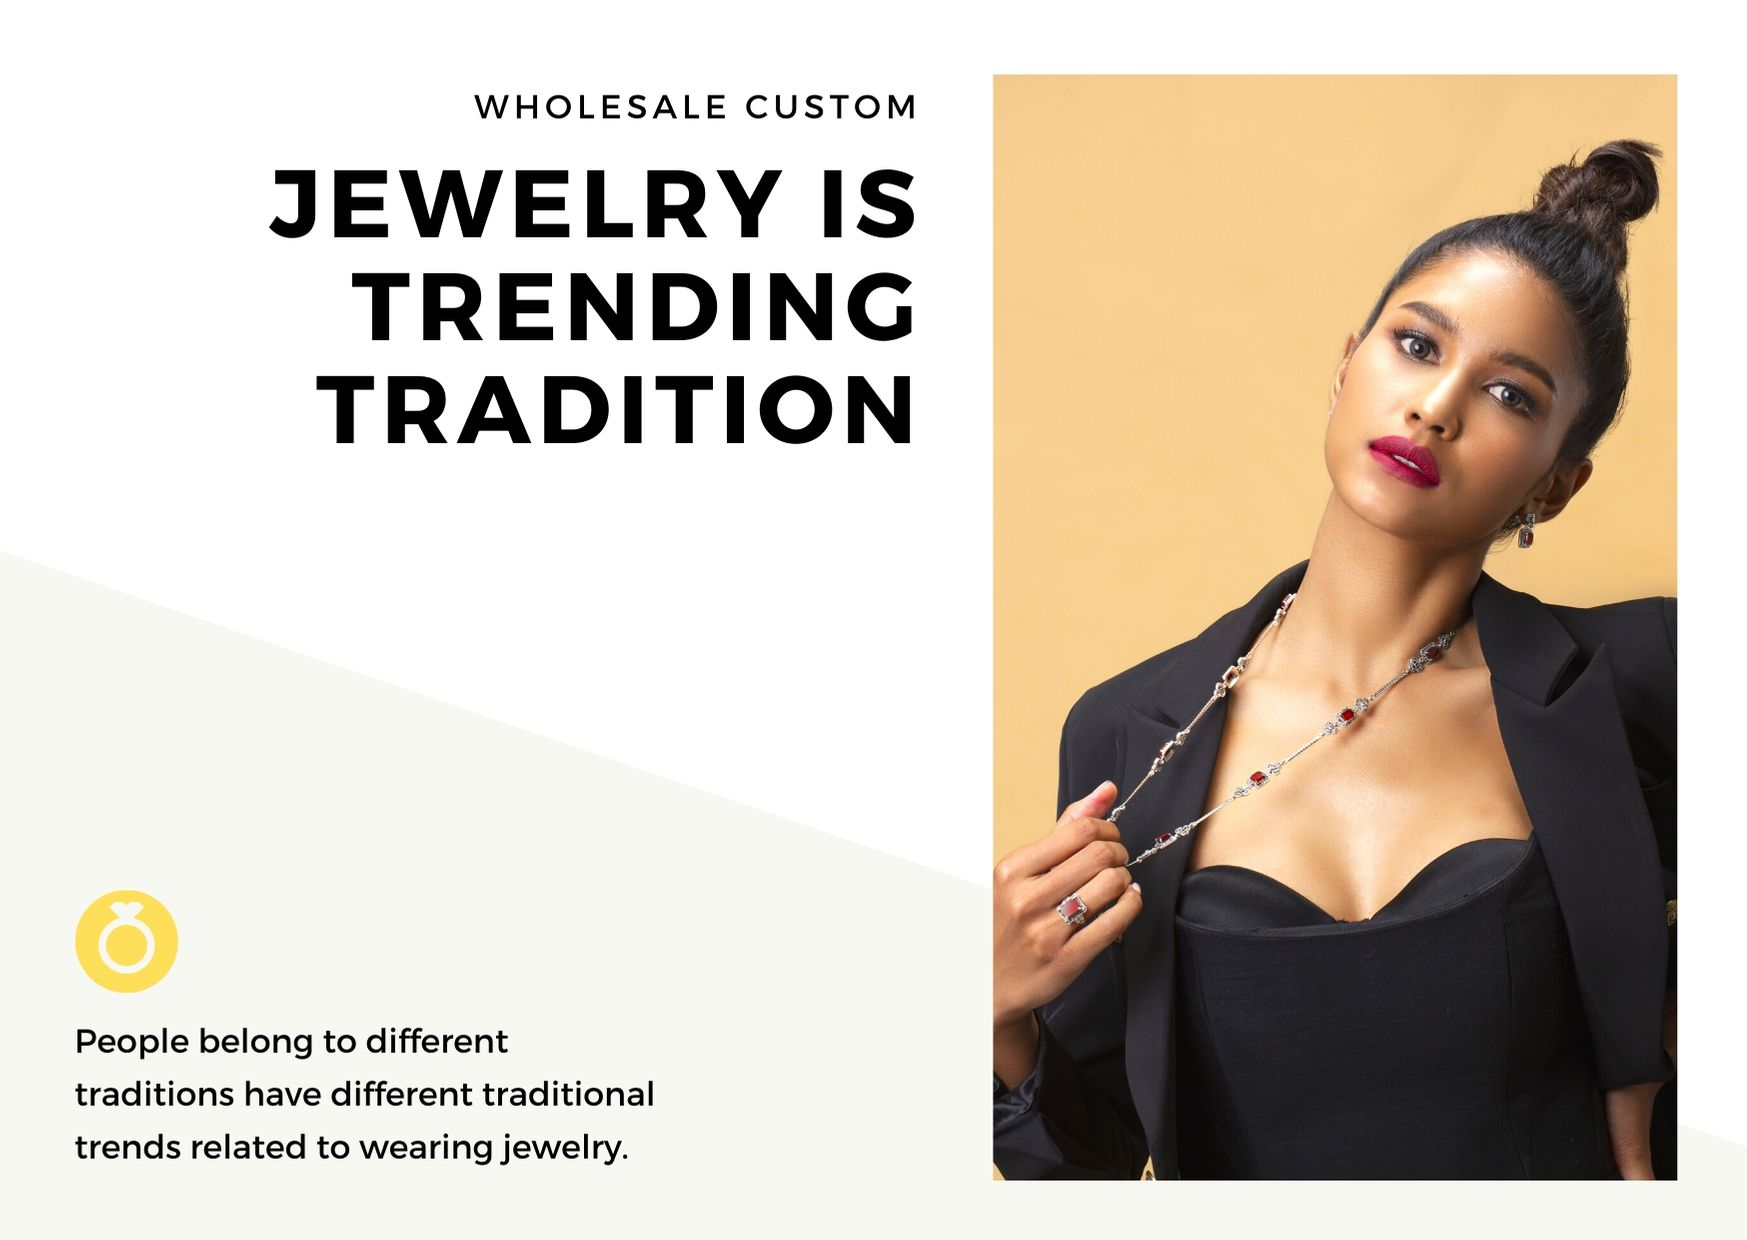 WHOLESALE CUSTOM JEWELRY IS TRENDING TRADITION